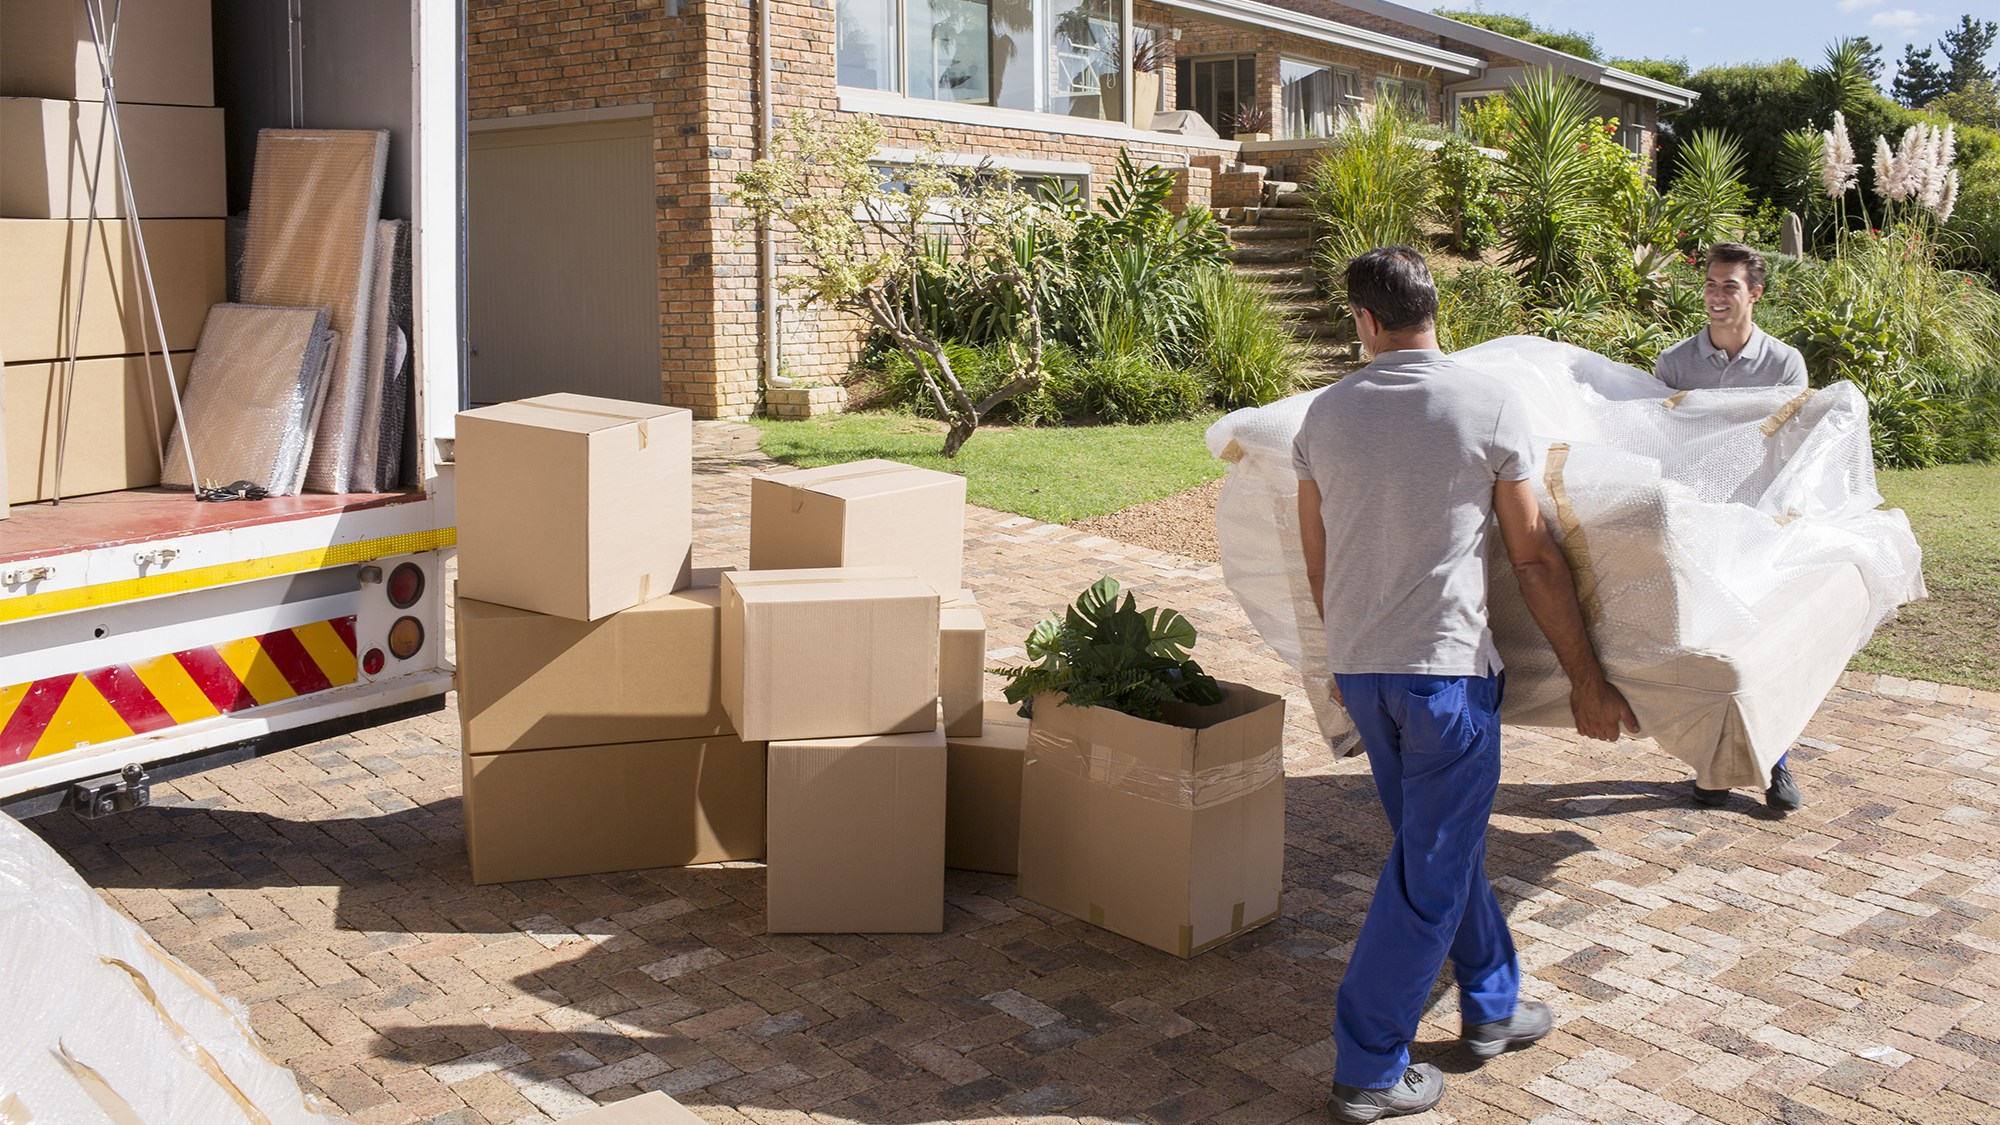 Packers and Movers in Faridabad - Home Shifting